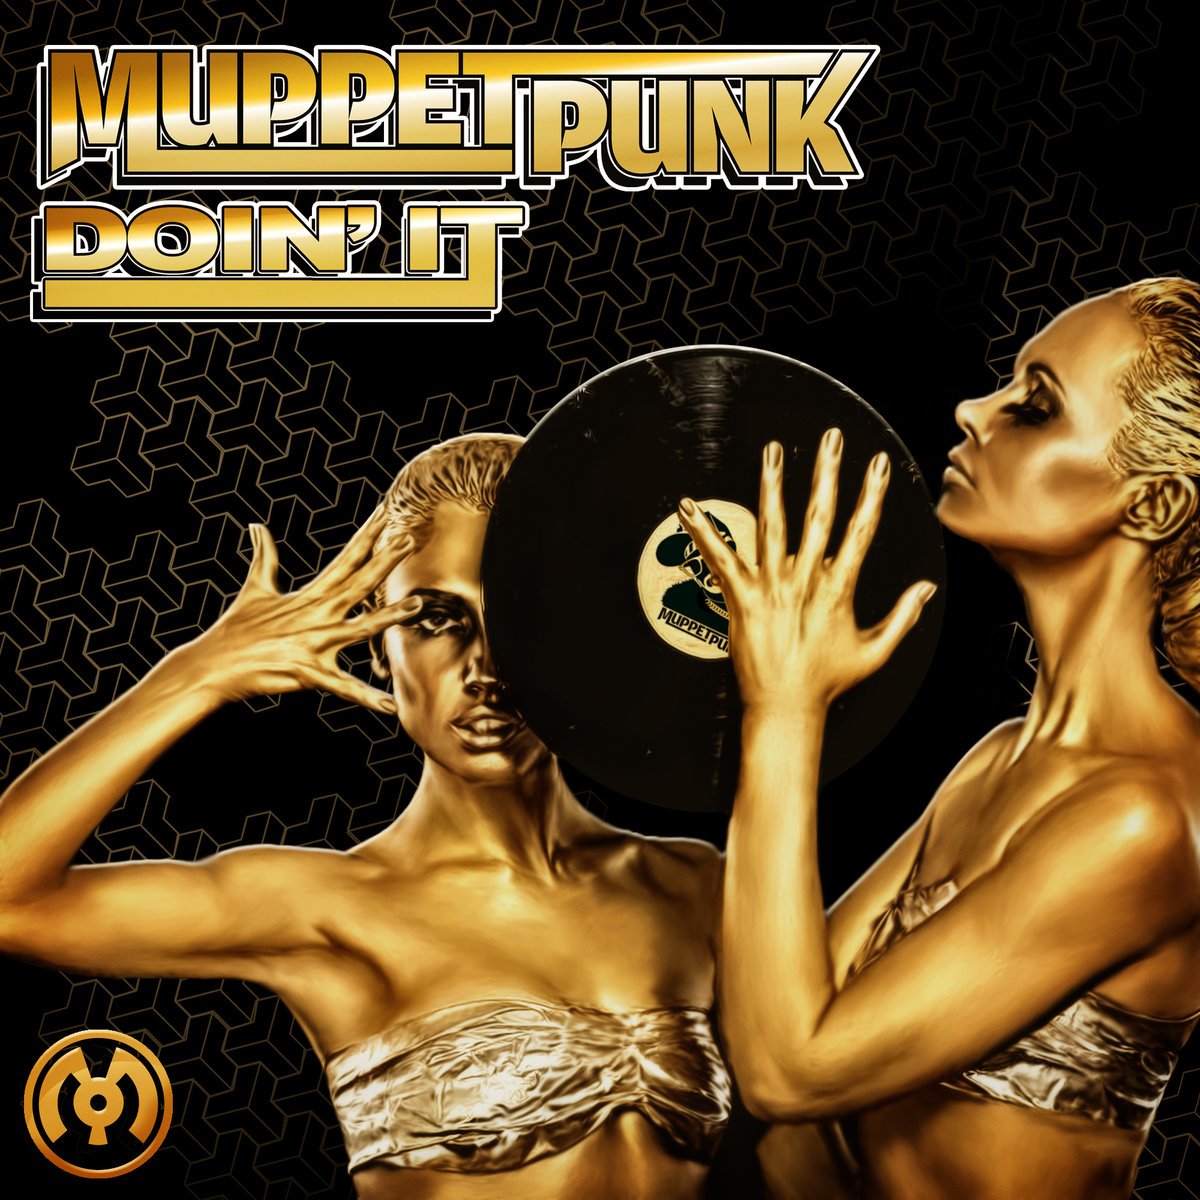 Muppet Punk - This Is Time @ 'Doin' It' album (electronic, dubstep)